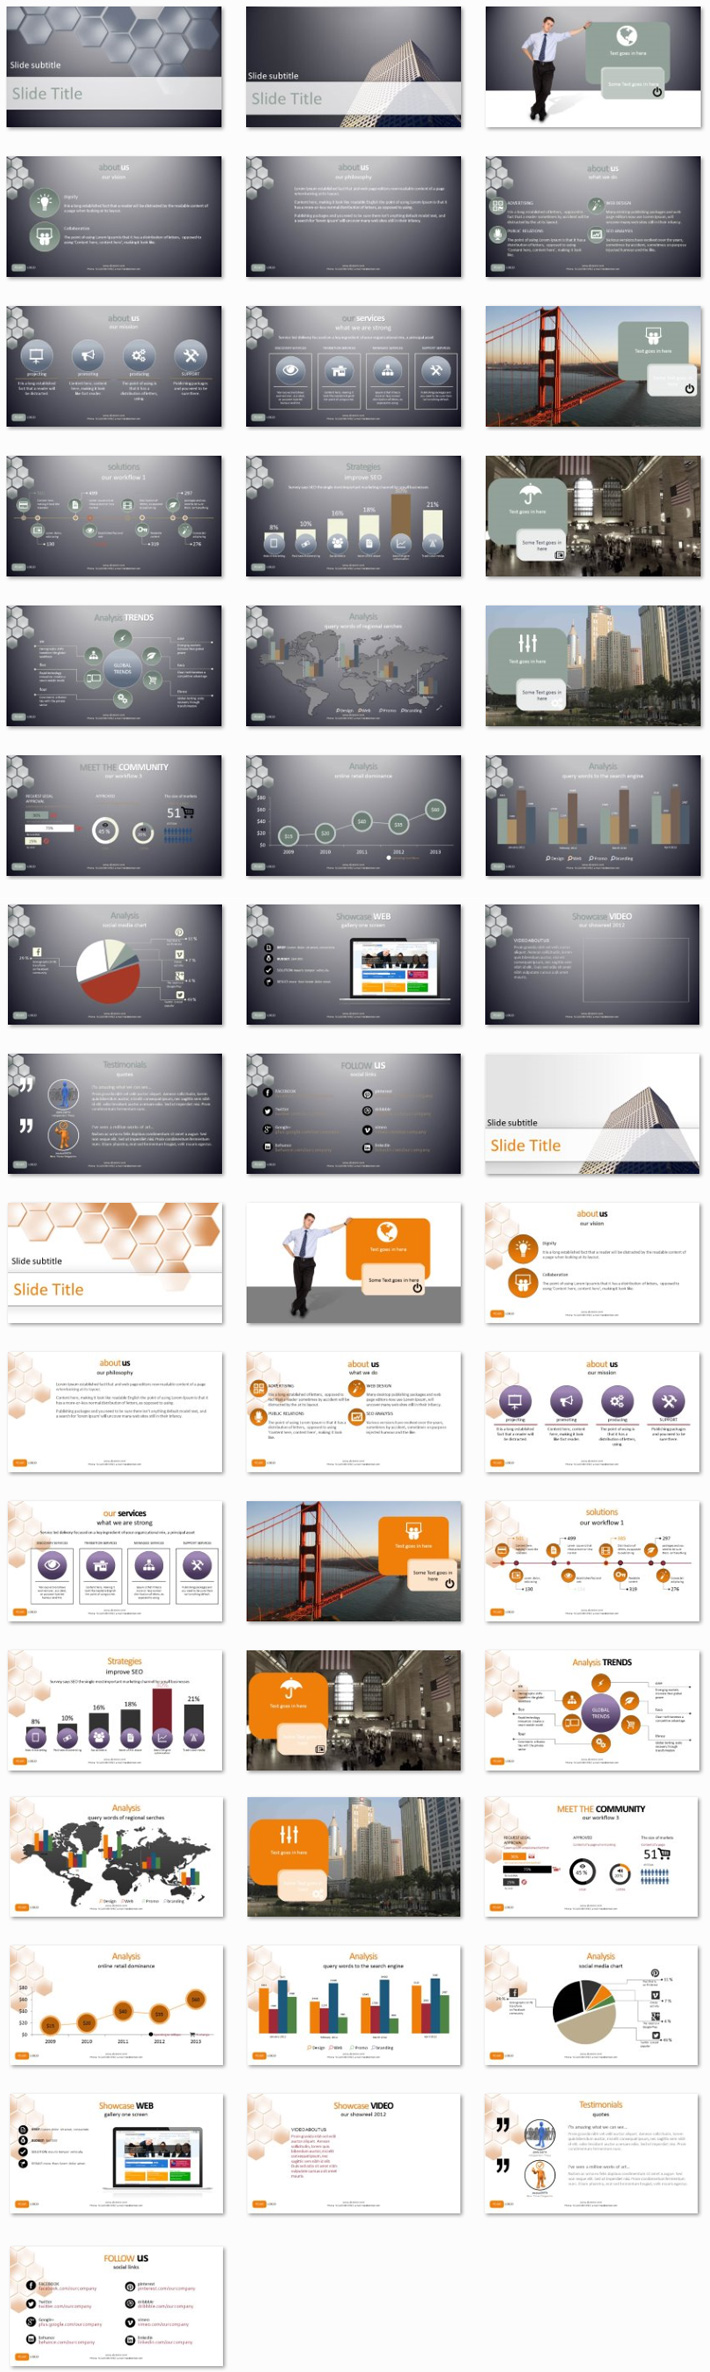 Power Presentation: Abstract Honeycomb PPT Premium PowerPoint Presentation Template Slide Set